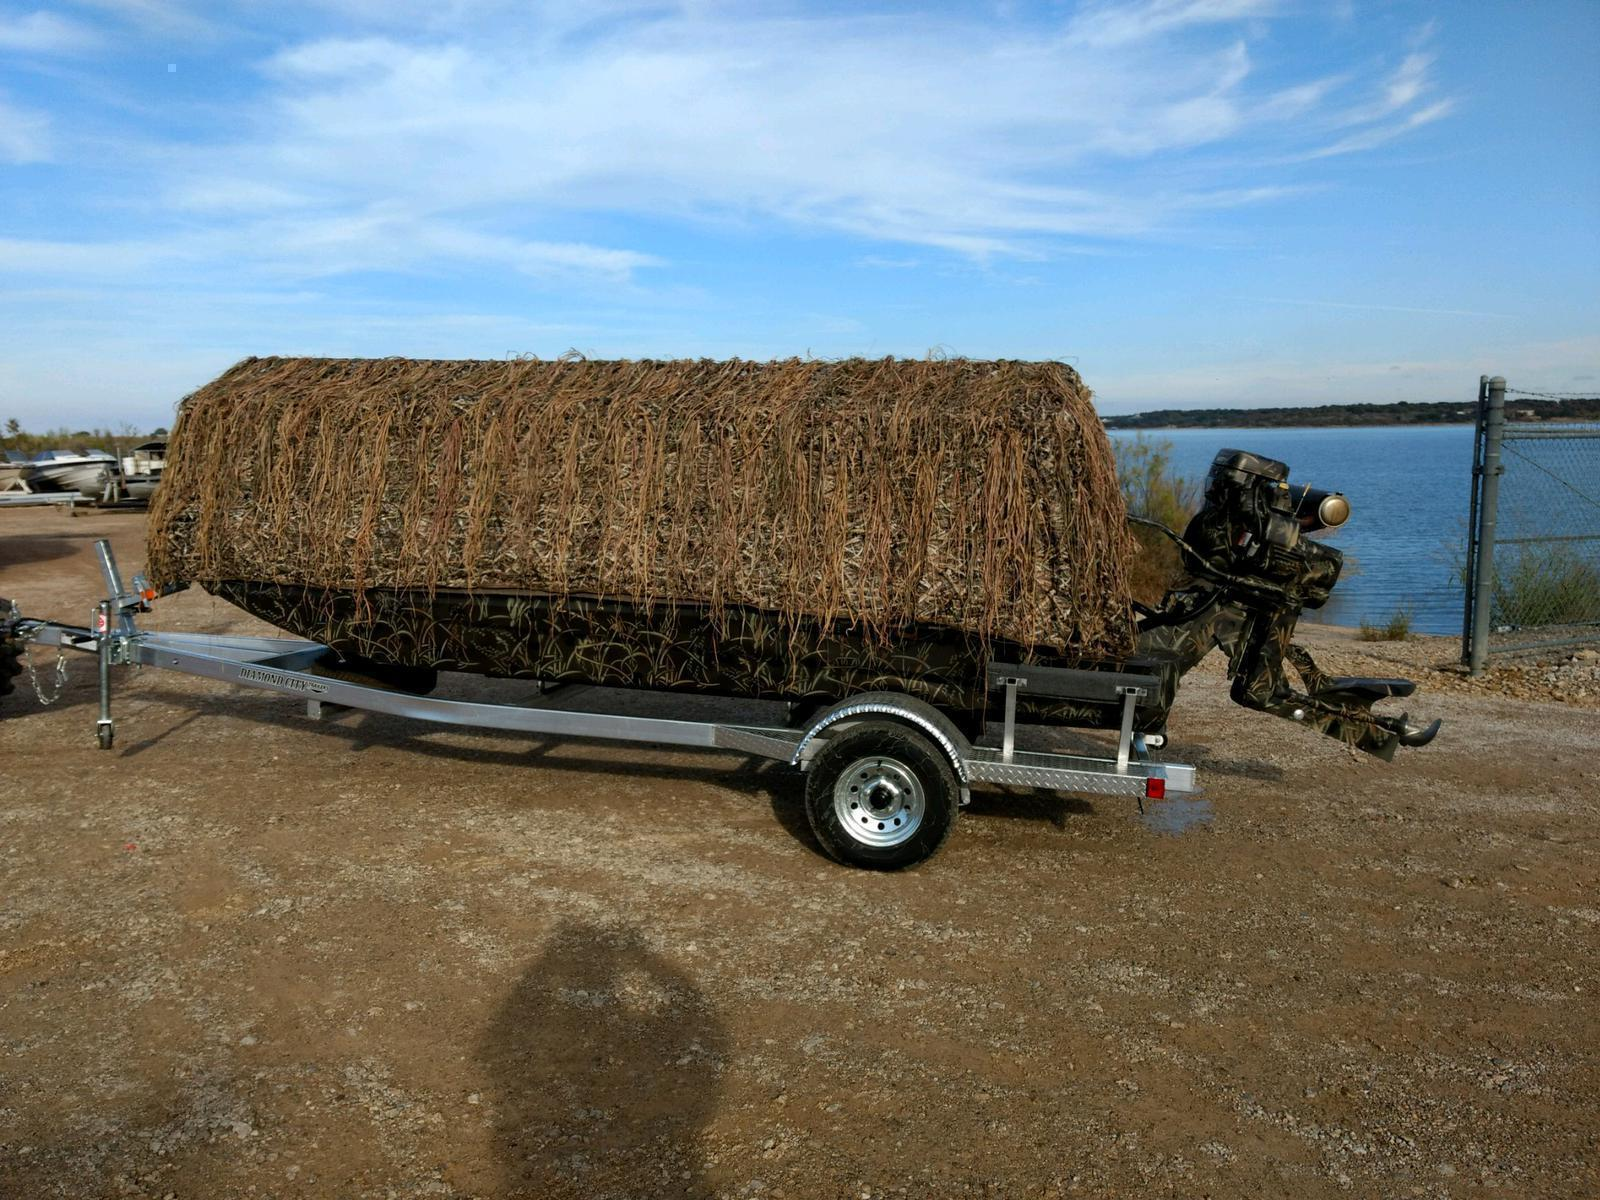 Excel DEMO 1754 SHALLOW WATER W/MUDBUDDY ULTIMATE DUCK HUNTING BOAT